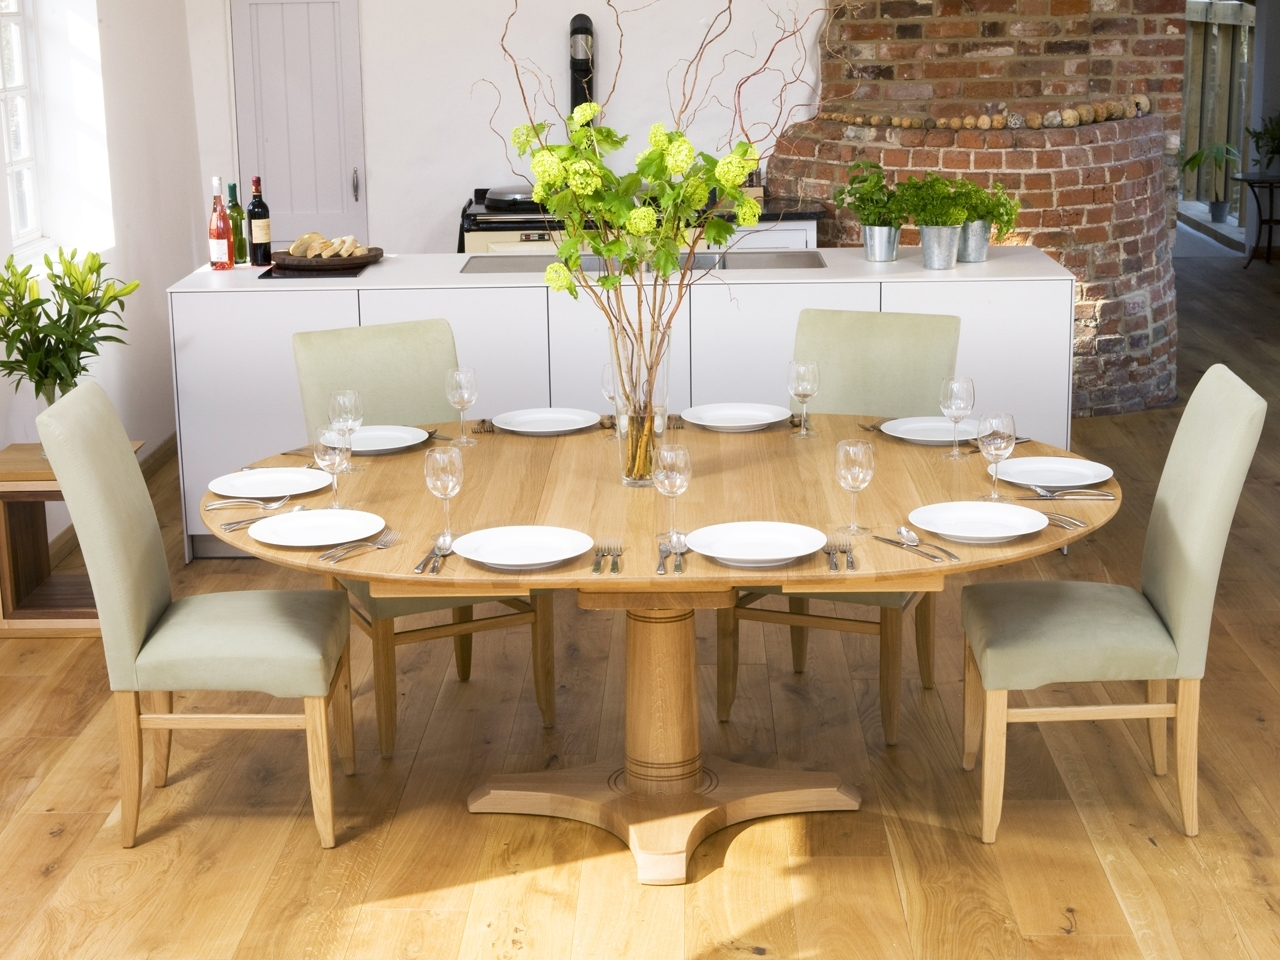 Berrydesign And The Ideal Home Show Intended For Newest Small Round Extending Dining Tables (Gallery 5 of 25)